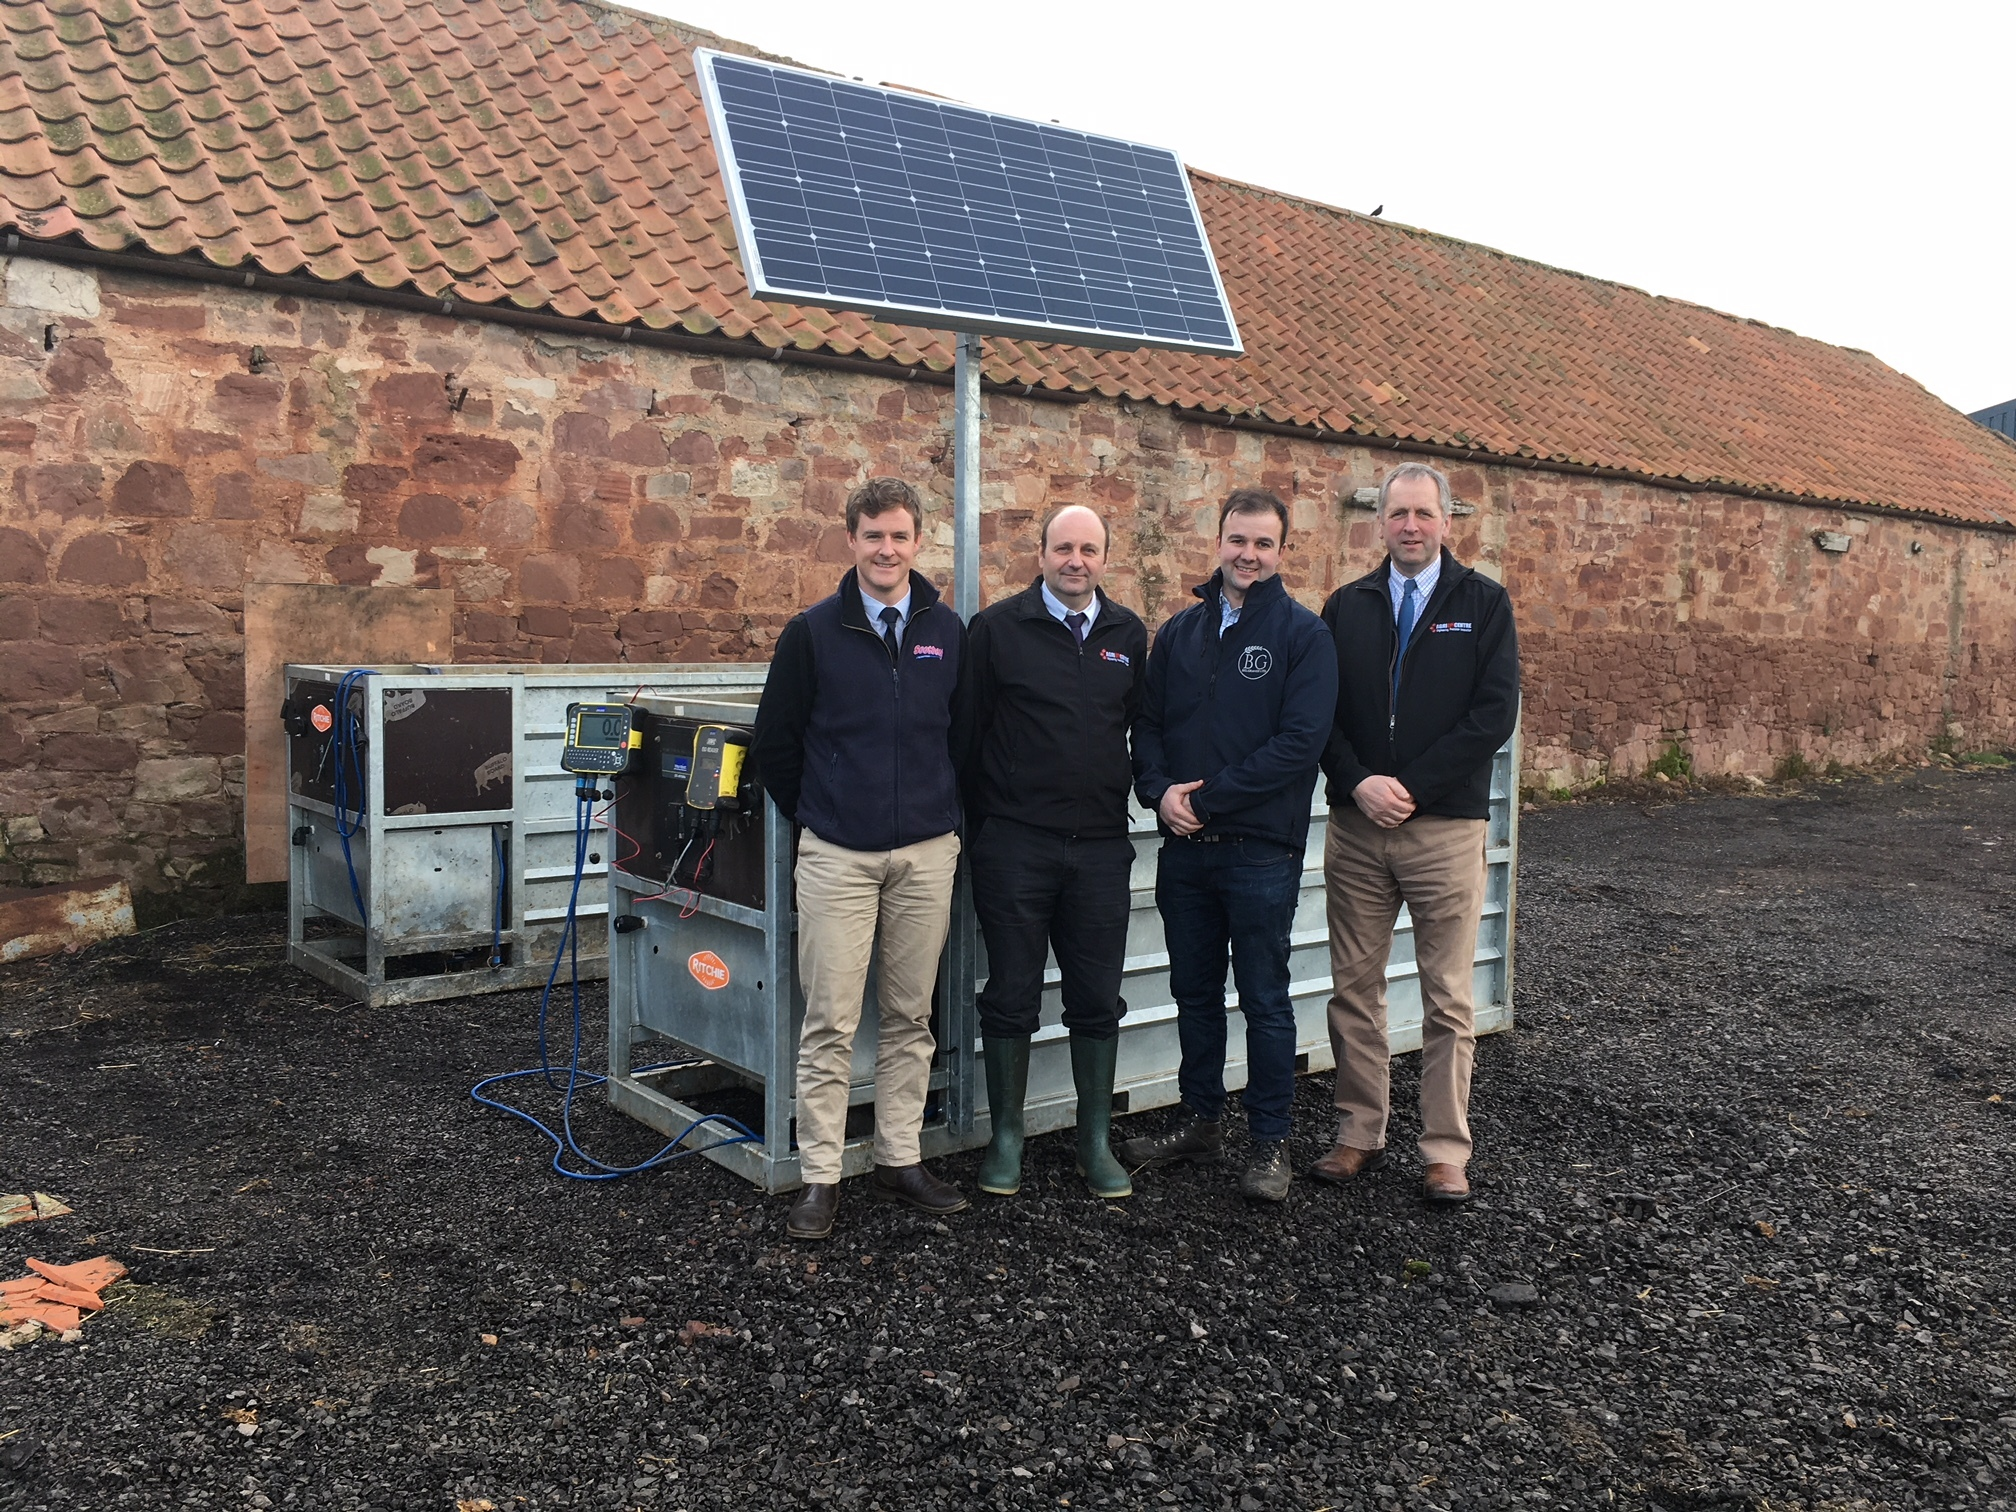 Willie Rowe, Scotbeef (Bielgrange's supply chain partne) left to Dave Ross, Agri-EPI; Niall Jeffrey, Bielgrange Farm; Gavin Dick, Agri-EPI in front of one of the Beef Monitors